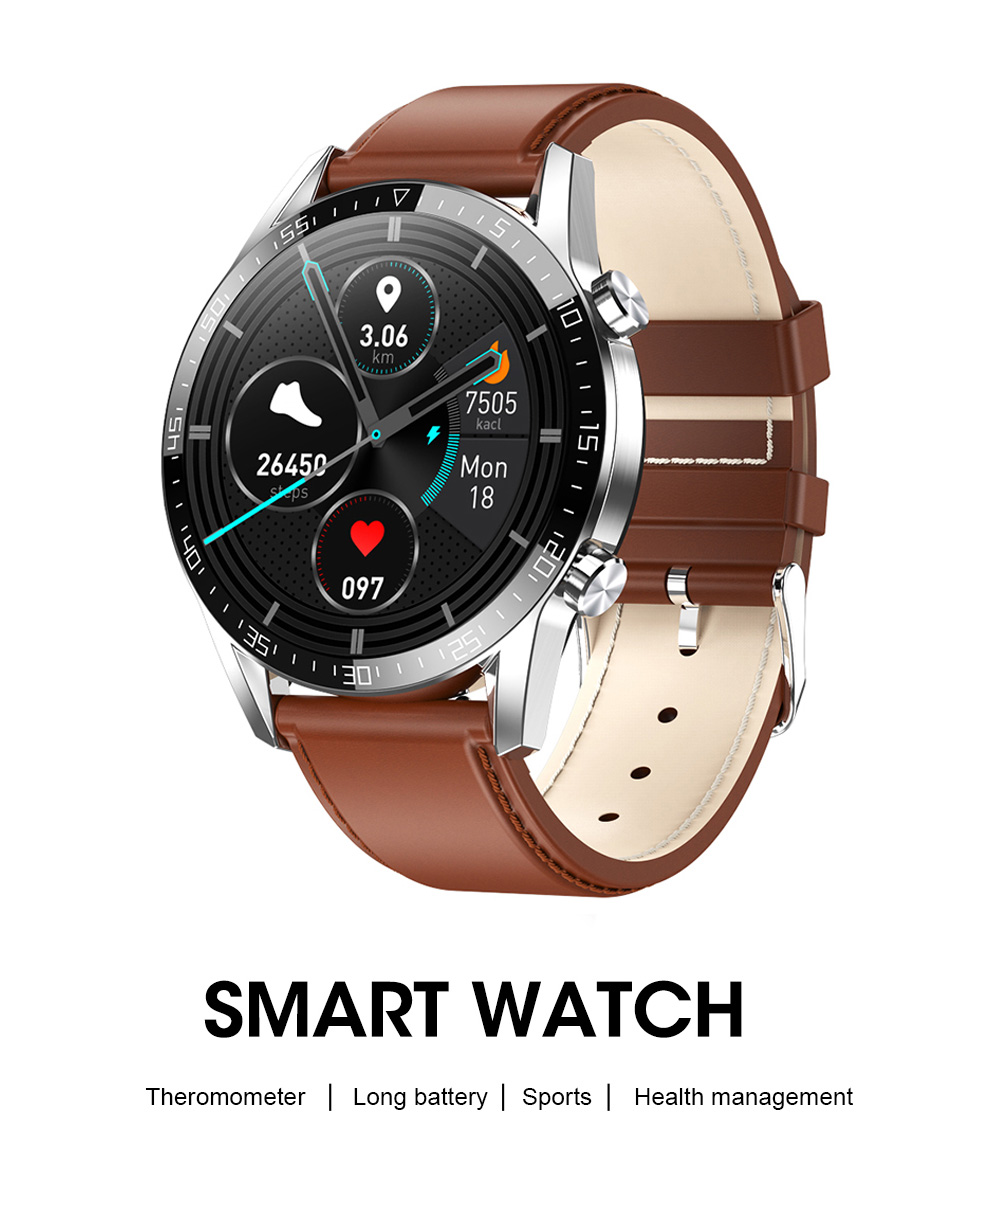 H843aadff8d854fee8d8435320cc4490df Timewolf IP68 Smart Watch Men Android 2020 Full Touch Smartwatch Men Women Smart Watch For Huawei Xiaomi Apple IOS Android Phone